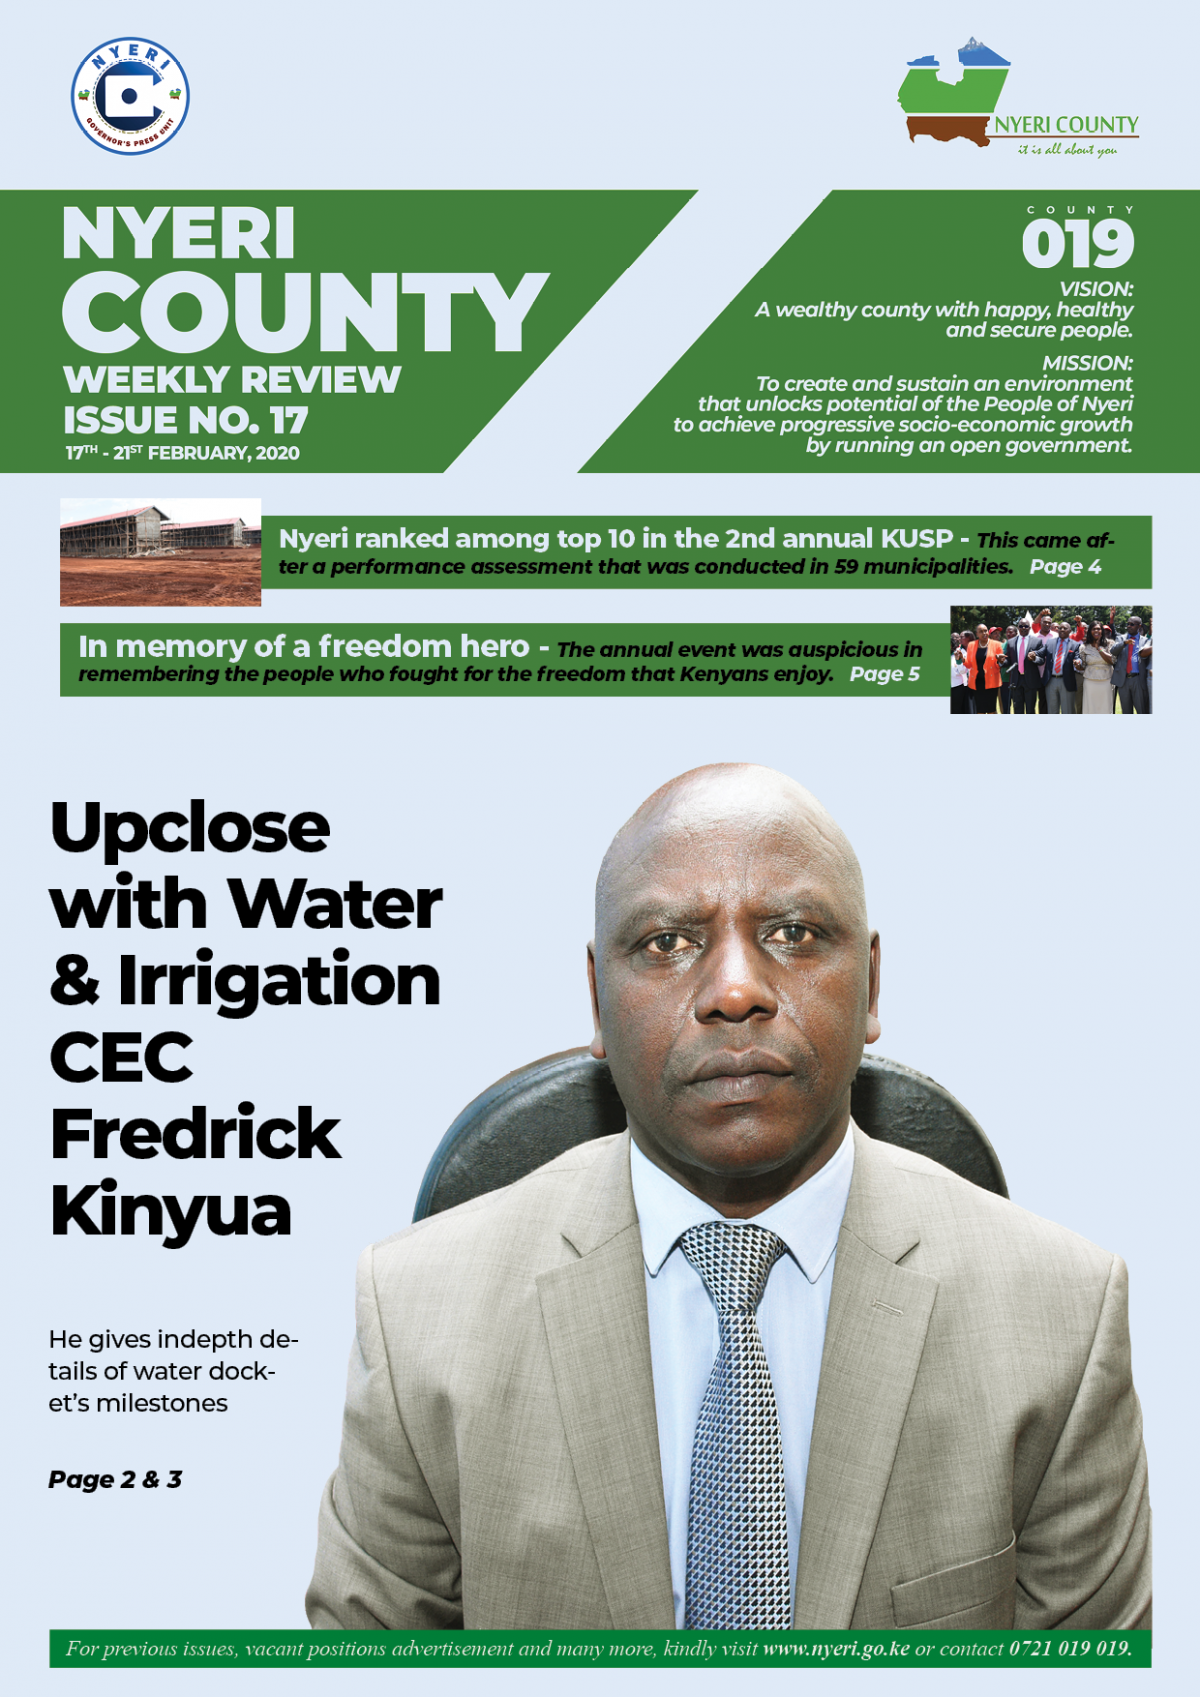 Issue 17 of County Weekly Review